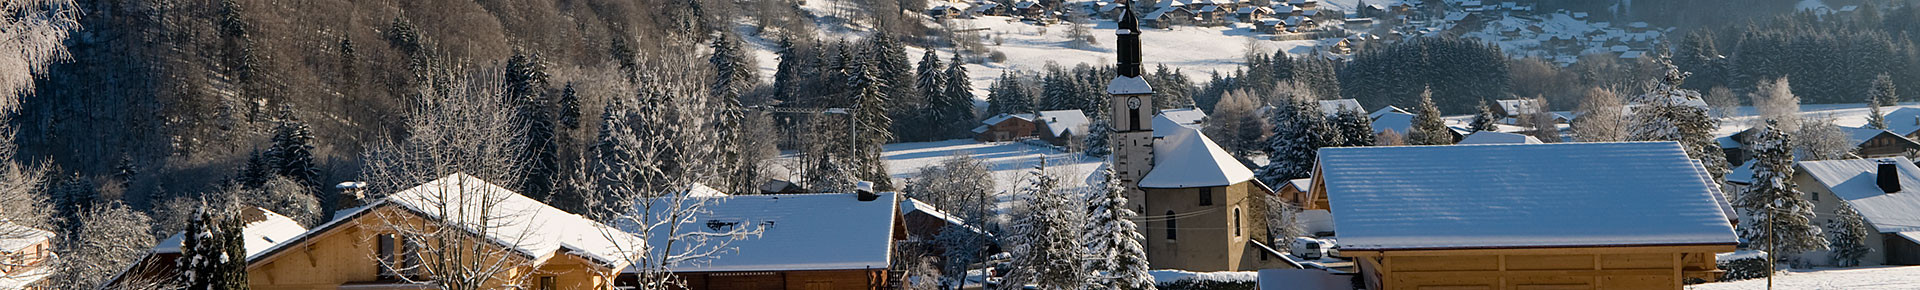 Le village d'Essert-Romand en hiver